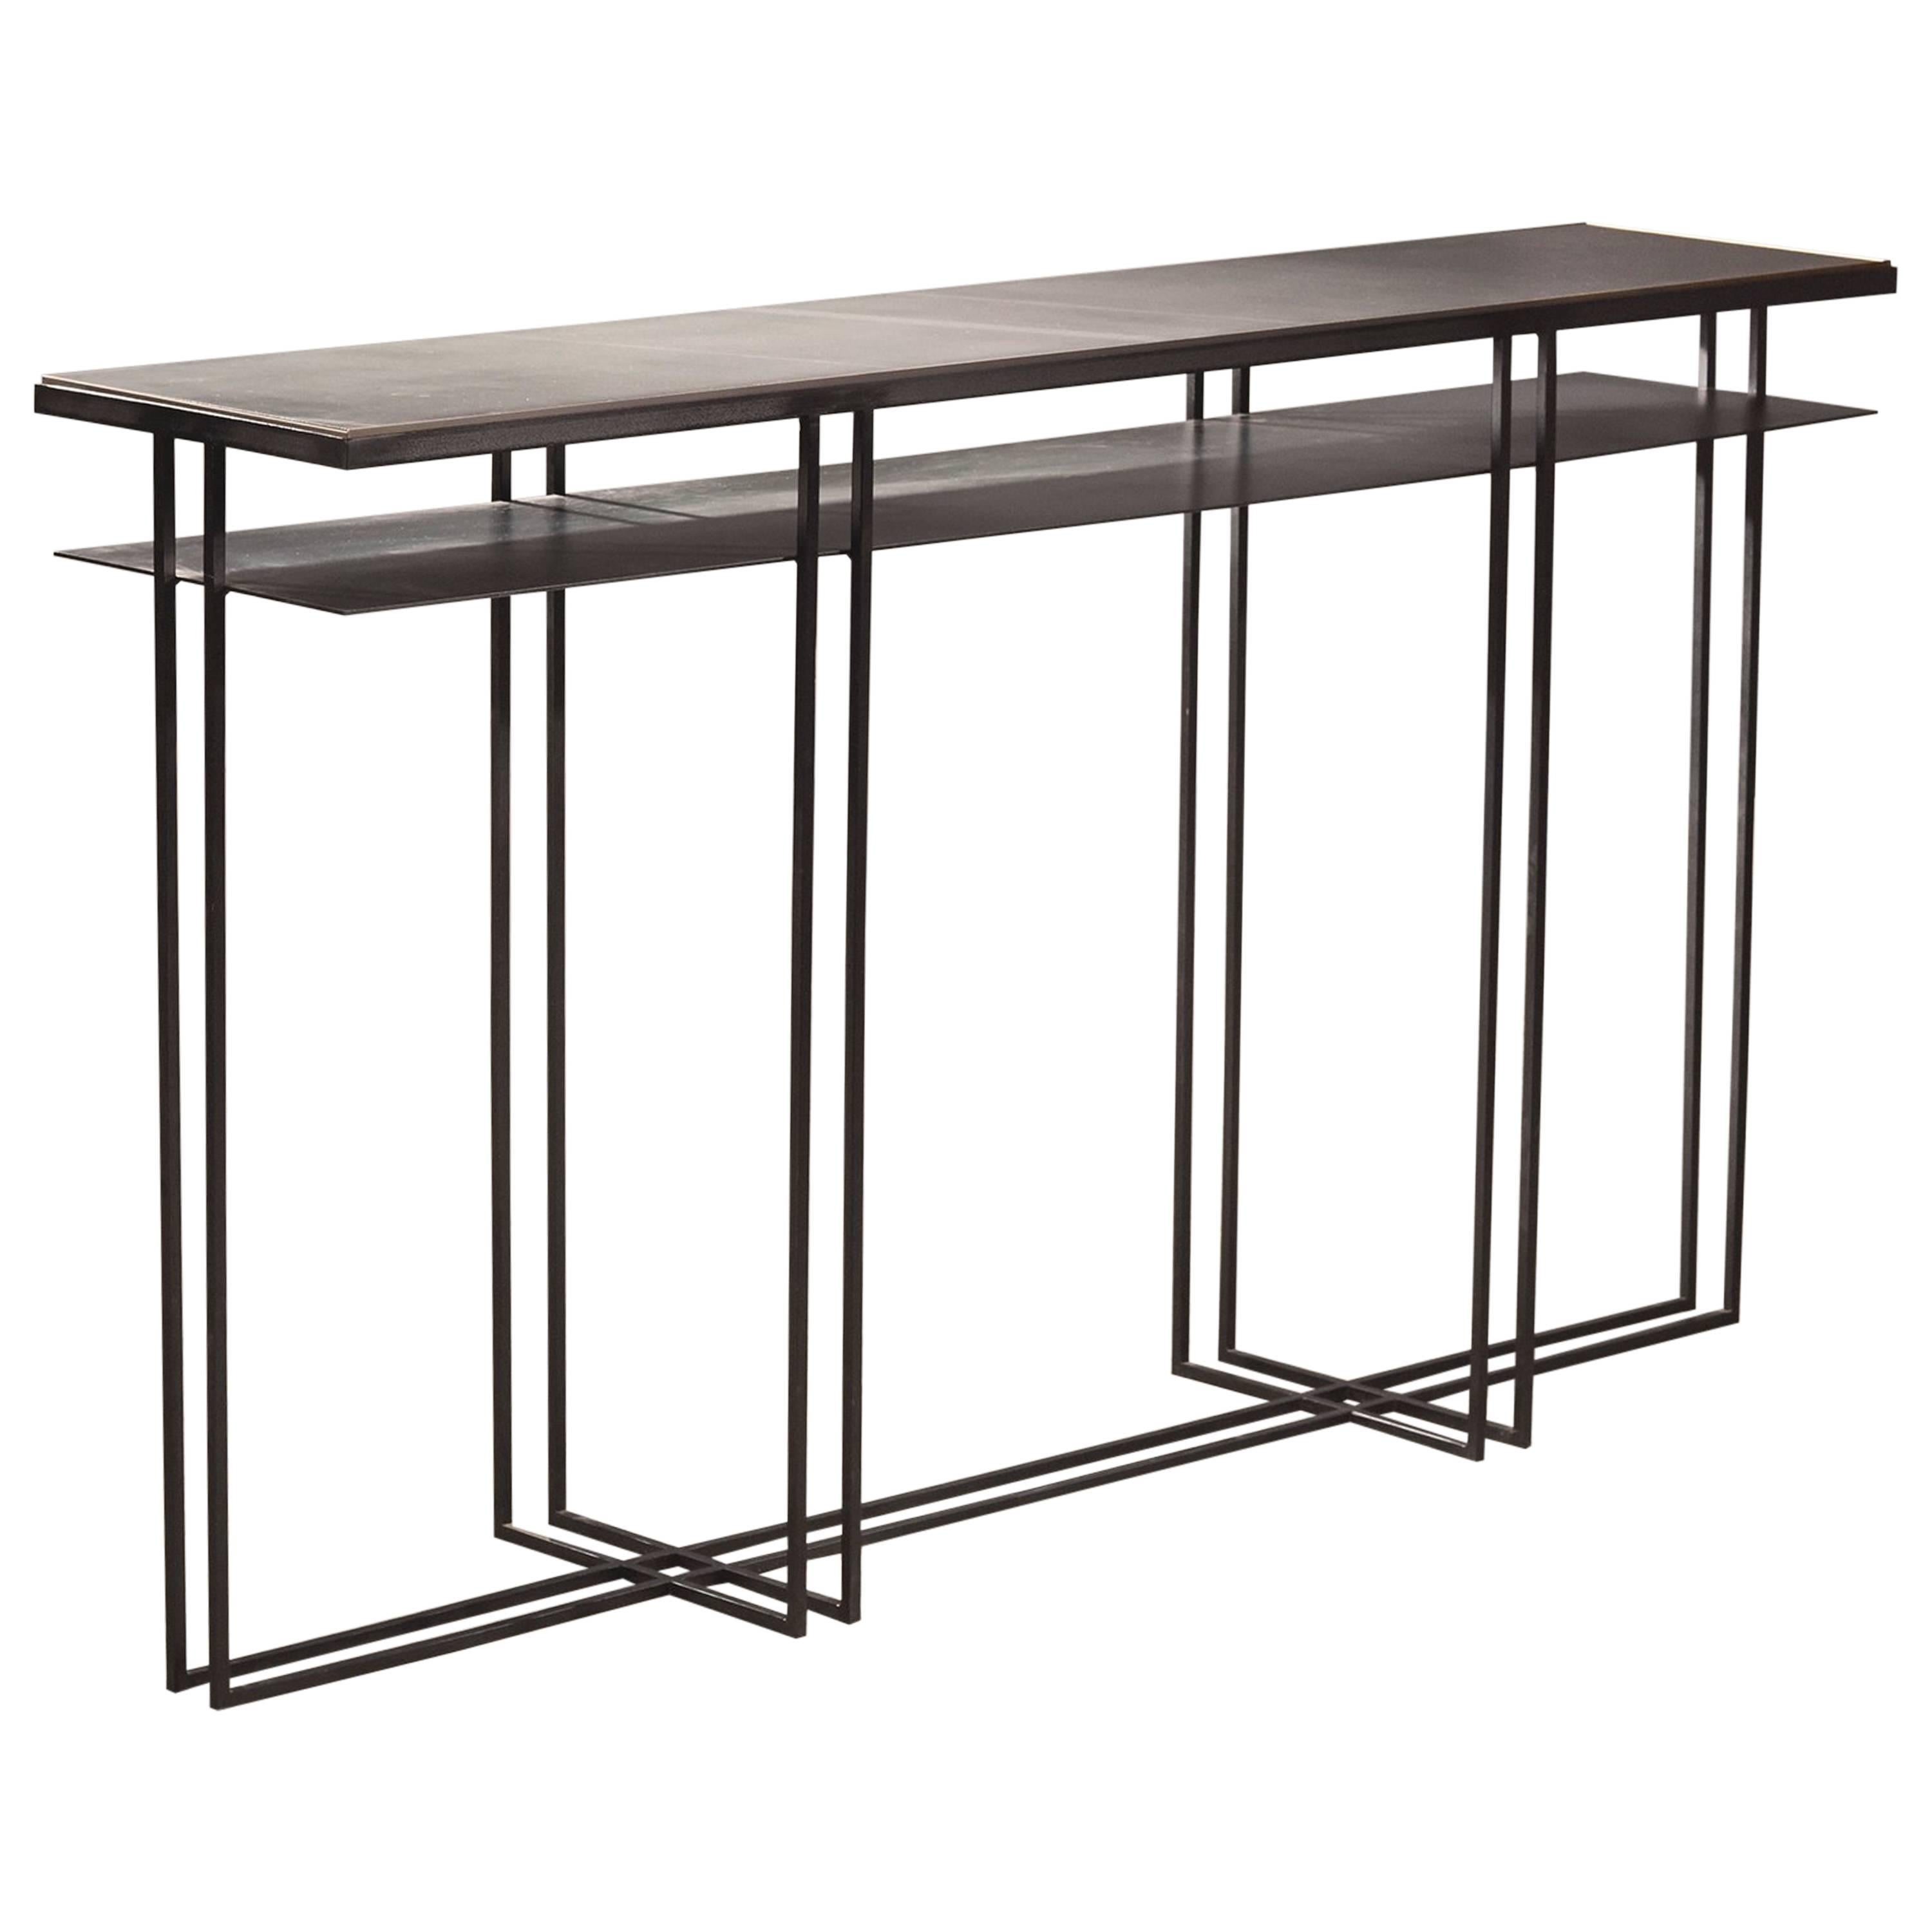 Large Cross Binate Art Deco Minimal Metal Console Table with Slate and Brass